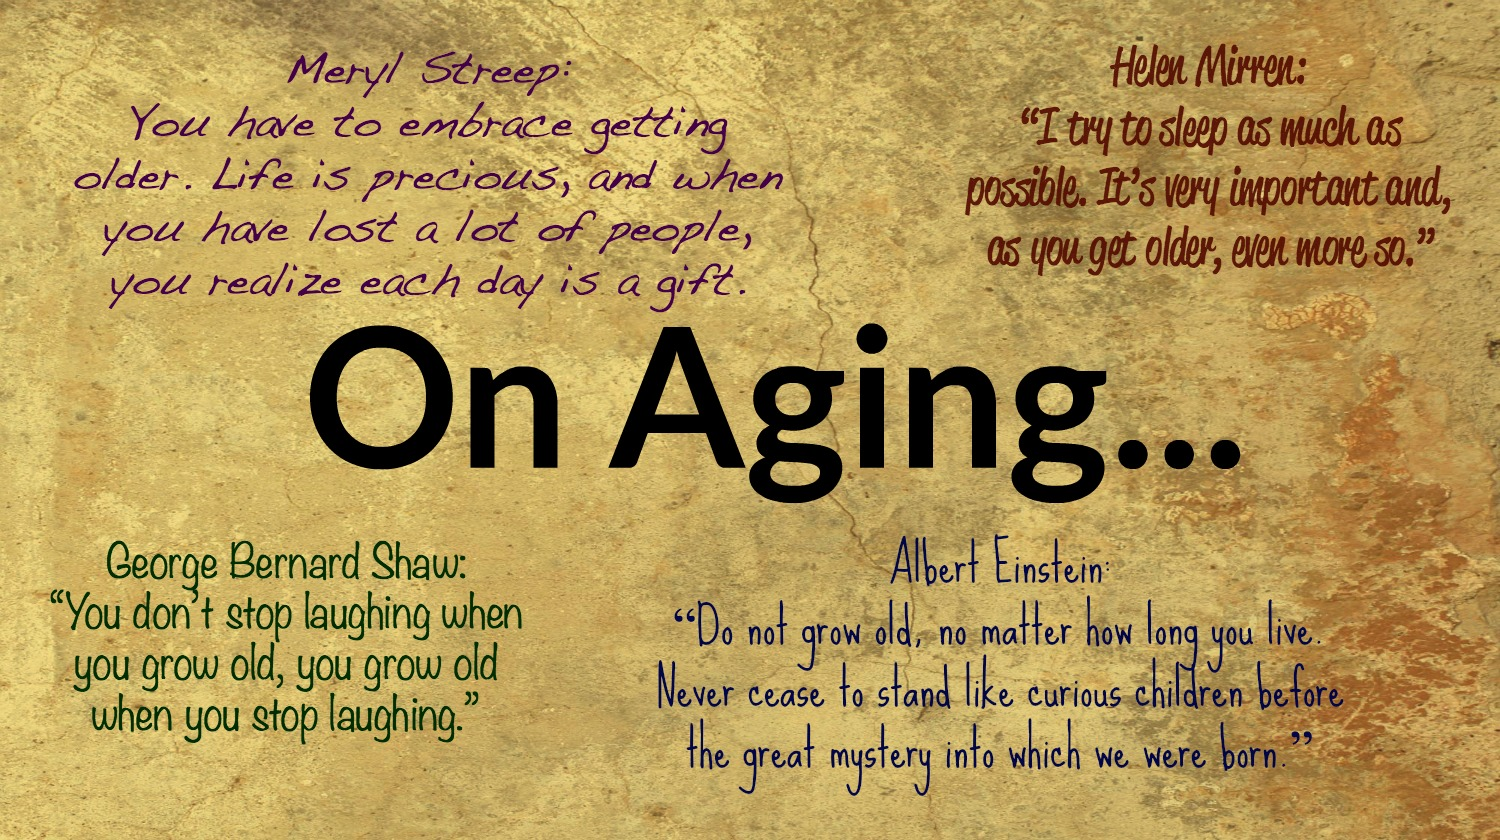 Great Positive Quotes About Life 7 Inspirational Quotes For Aging Gracefully  Midlife Boulevard